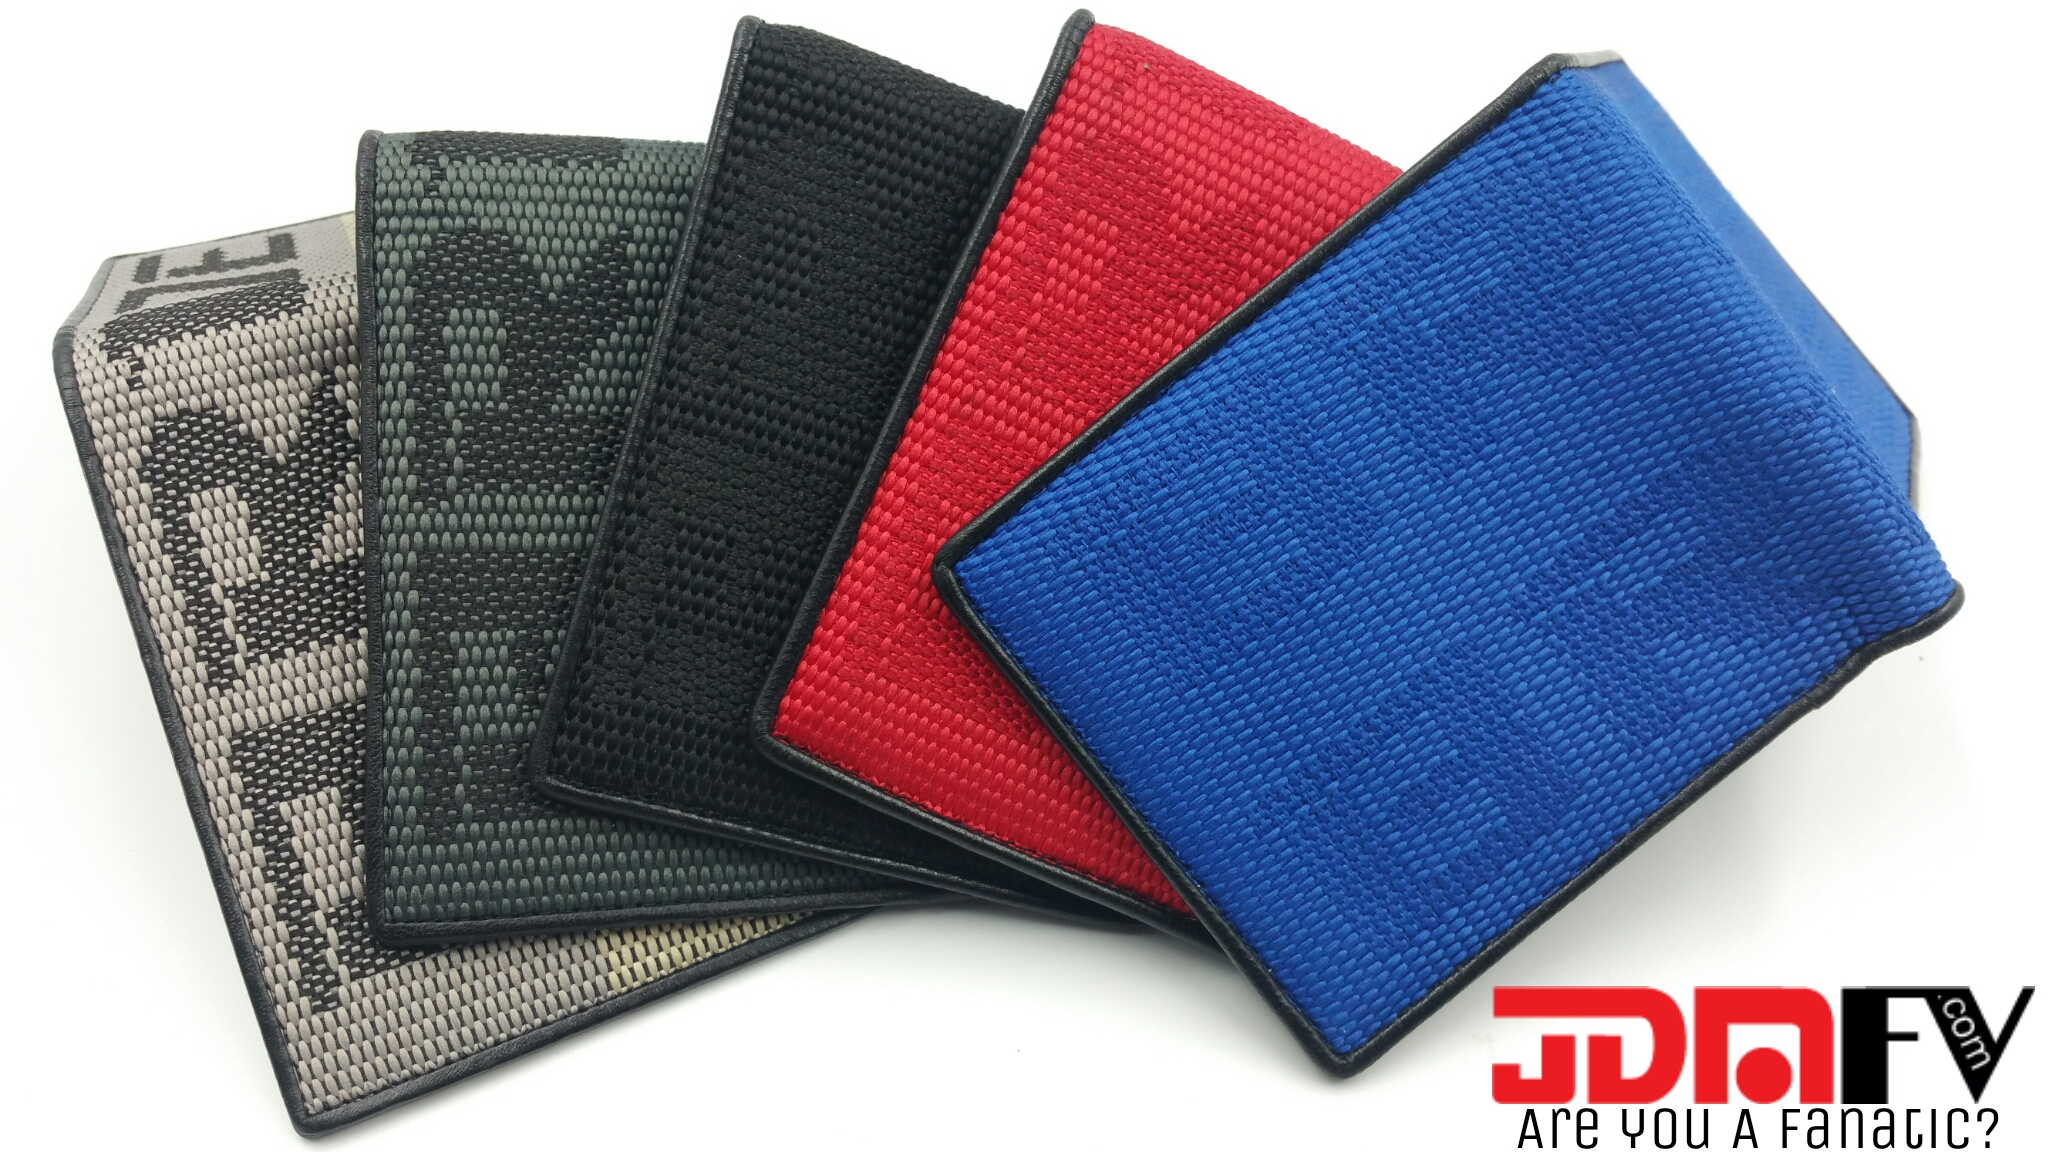 bride-wallets-blue-red-black-gray-gradation-jdmfv.jpg